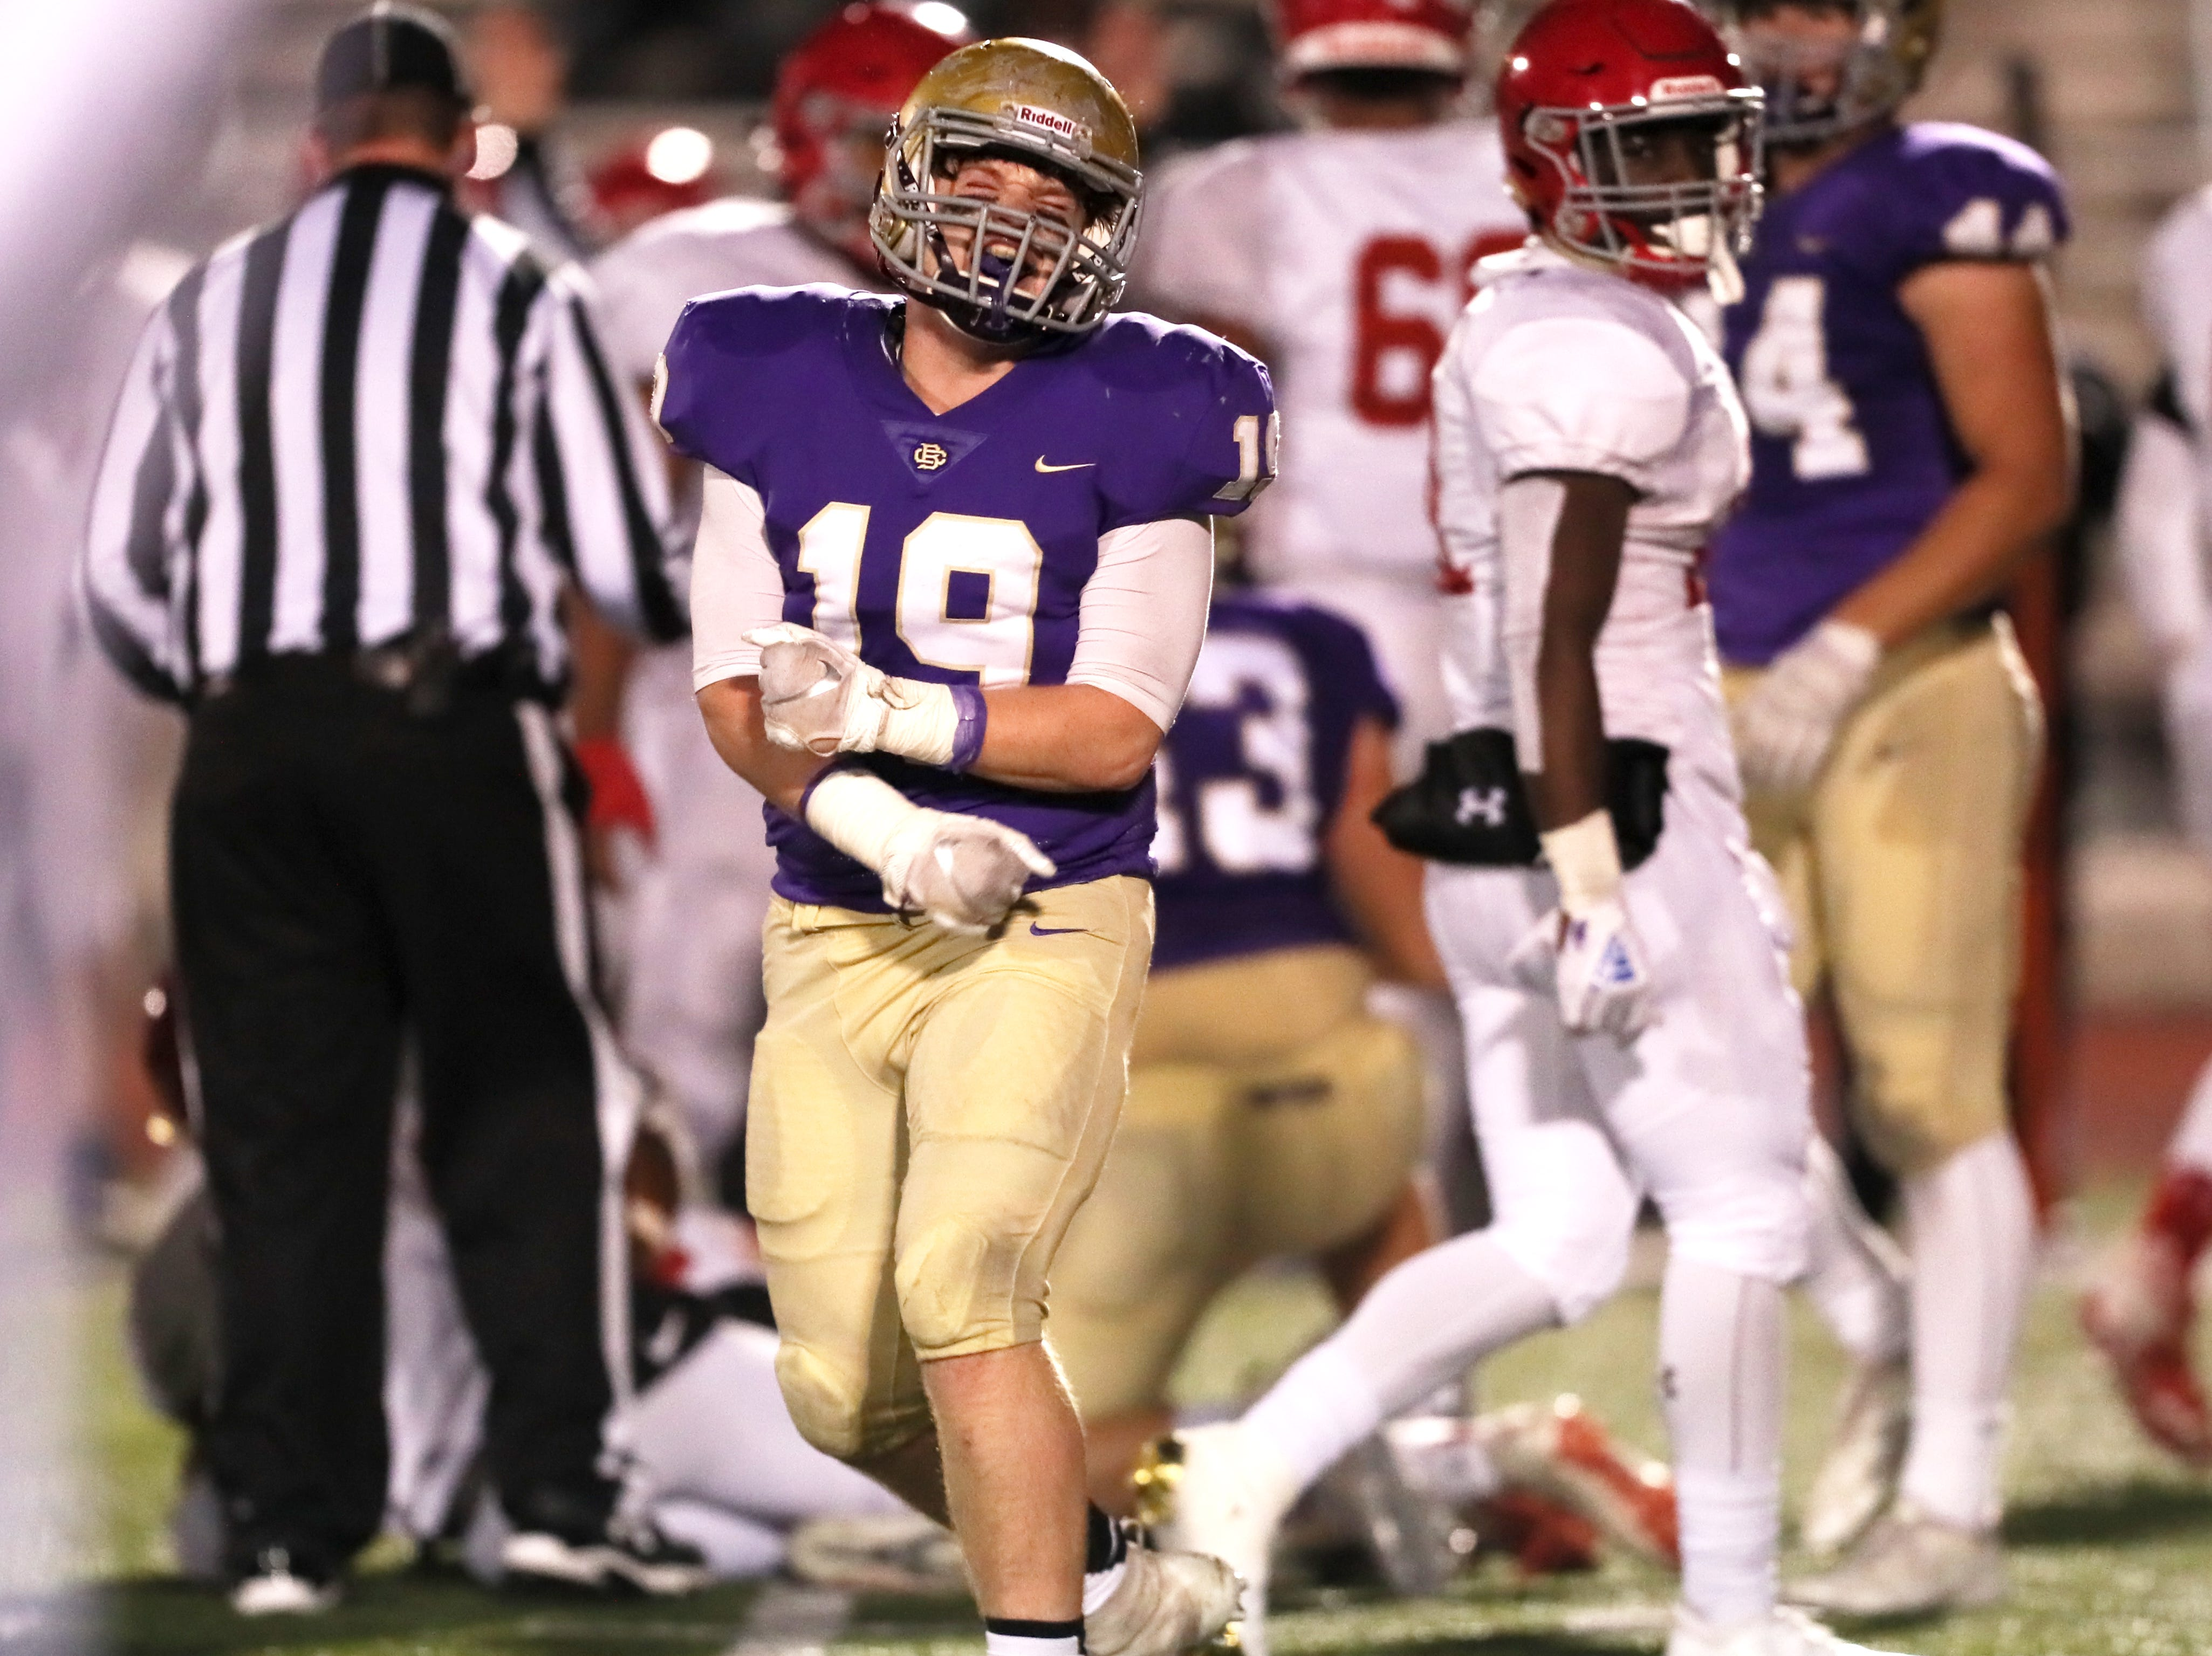 14.Christian Brothers(8-3) lost to Brentwood Academy, 21-14.